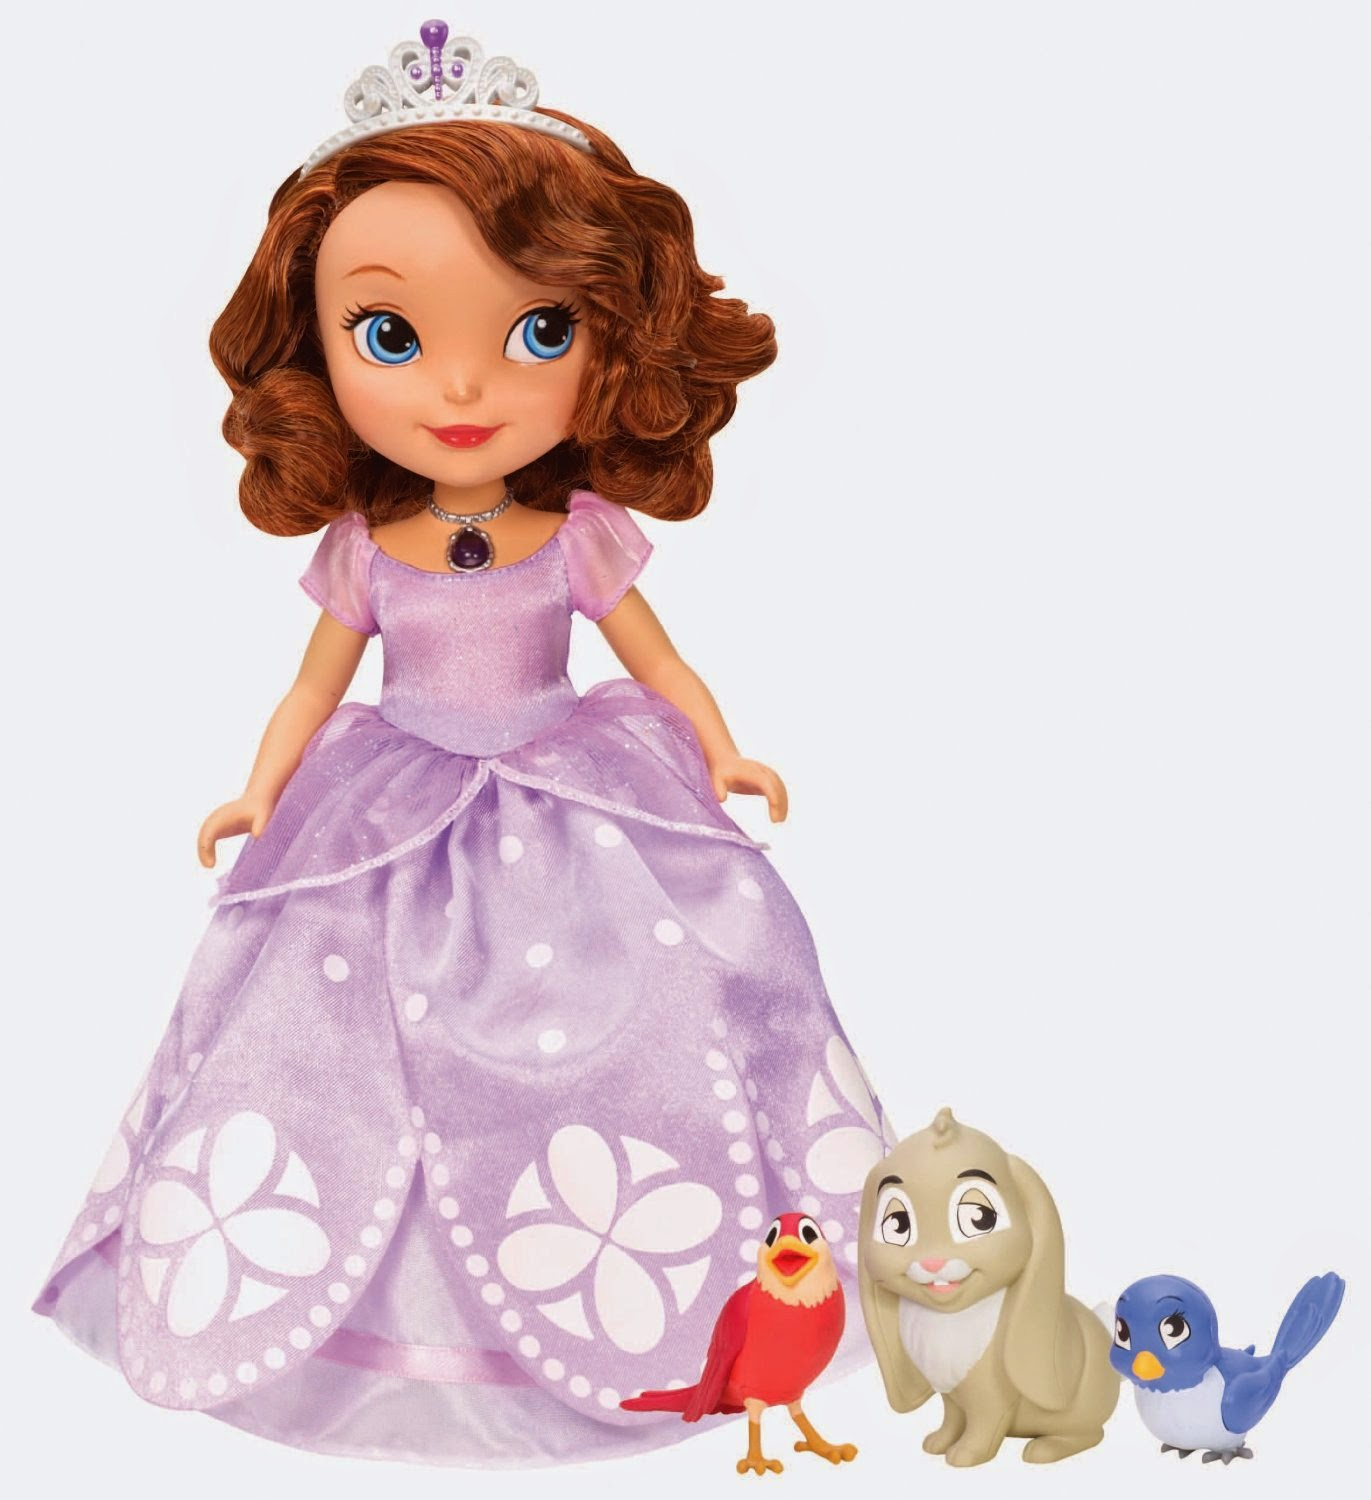 4littleboyz Online Toy Shop  Clothings SOFIA THE FIRST